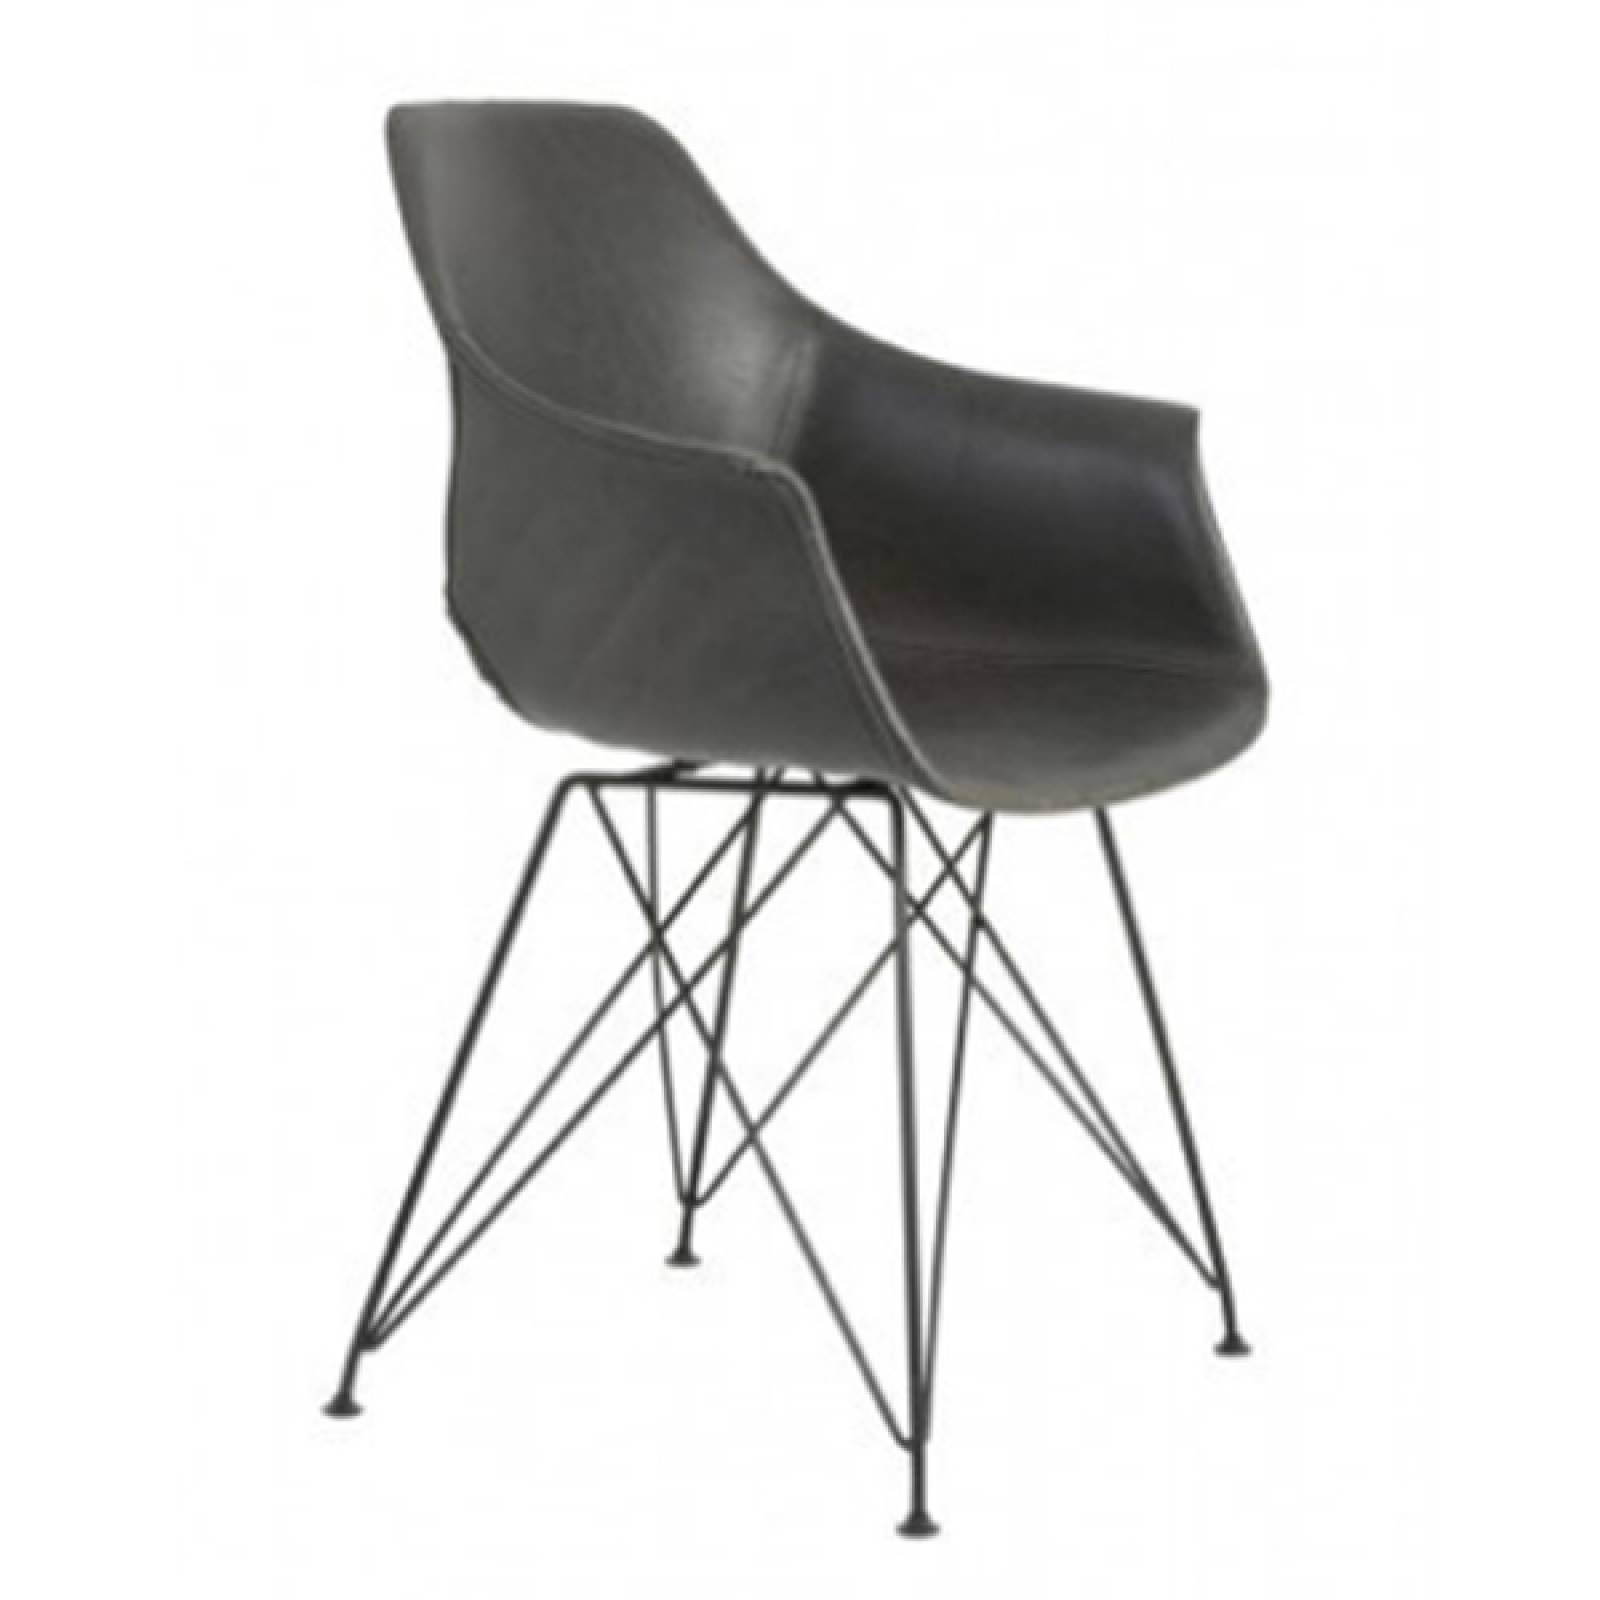 Brenis Grey Chair With Black Wire Legs thumbnails